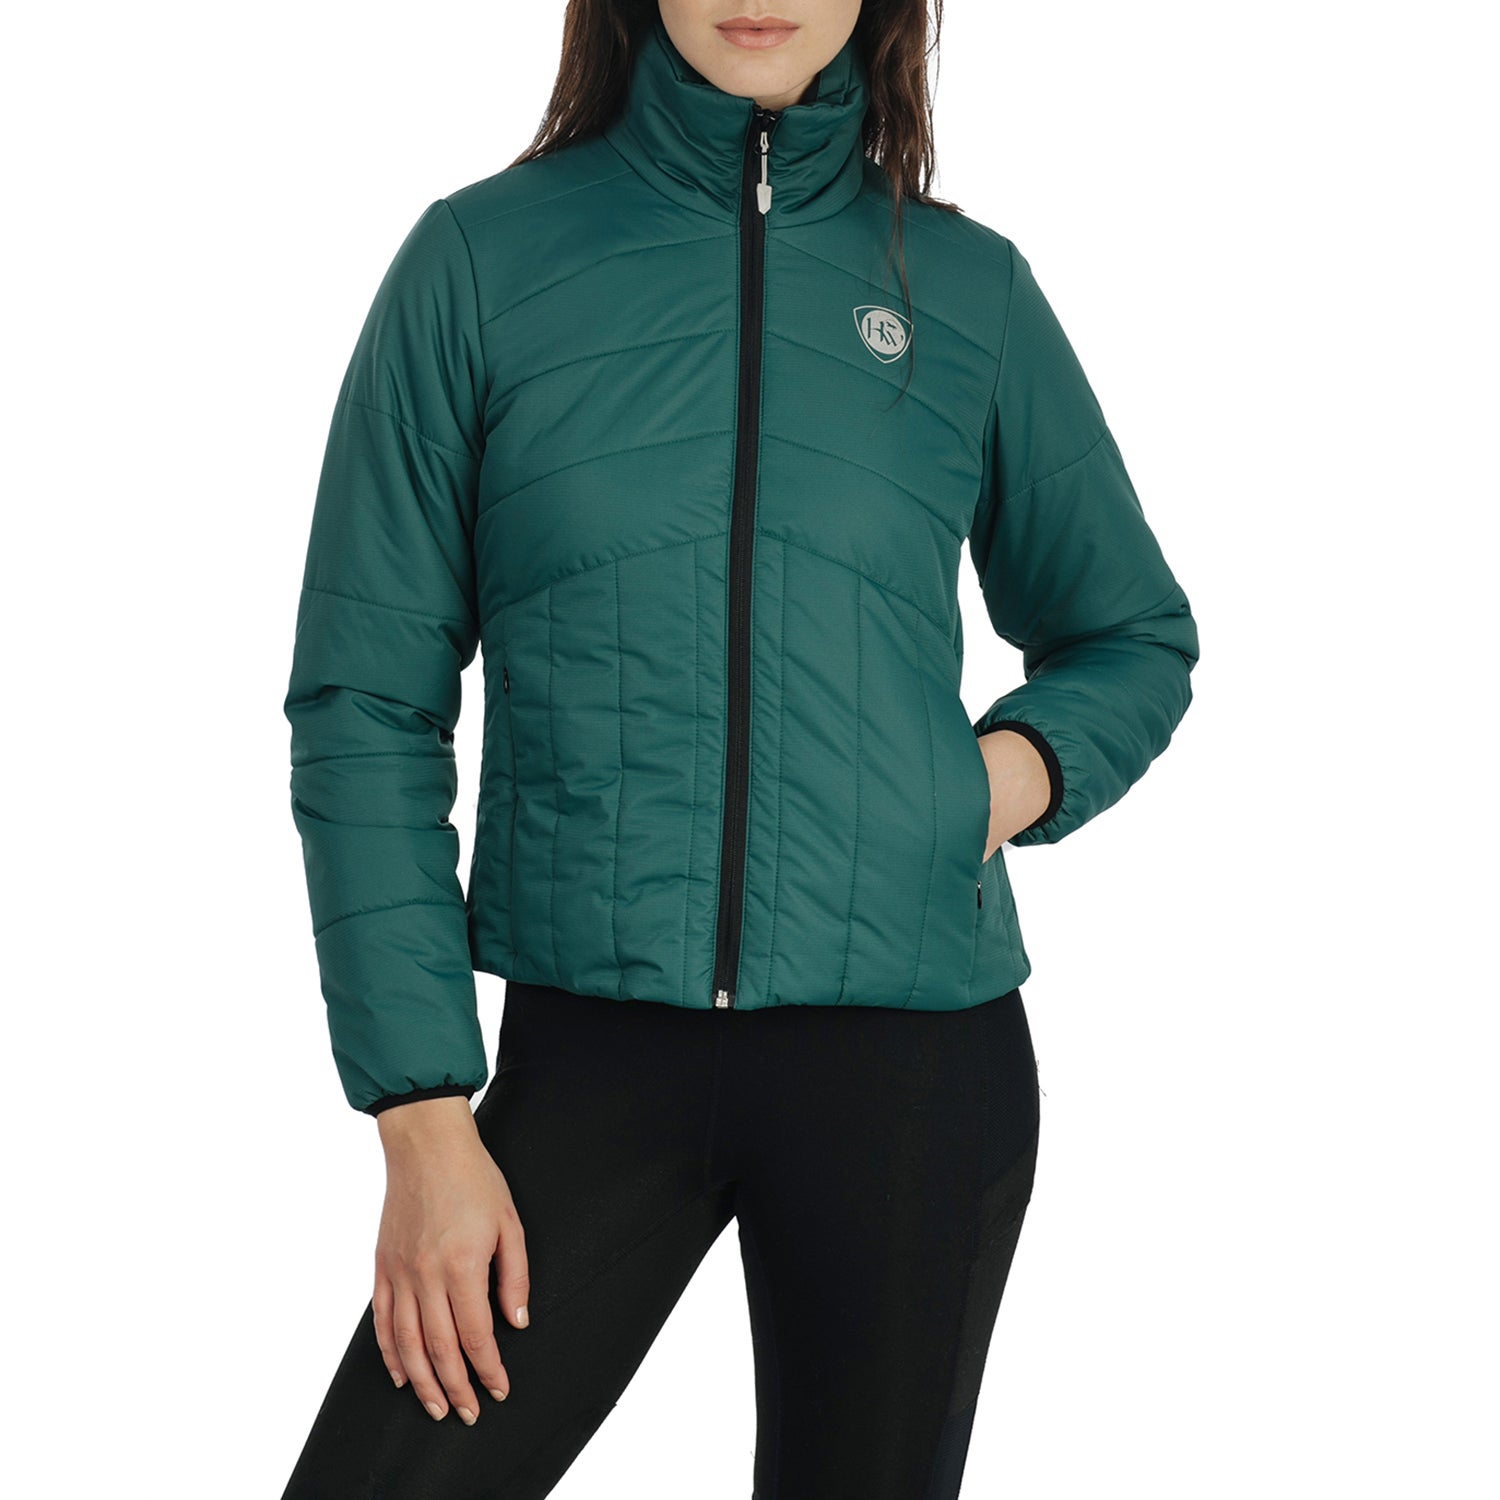 Horseware Eve Riding Jacket